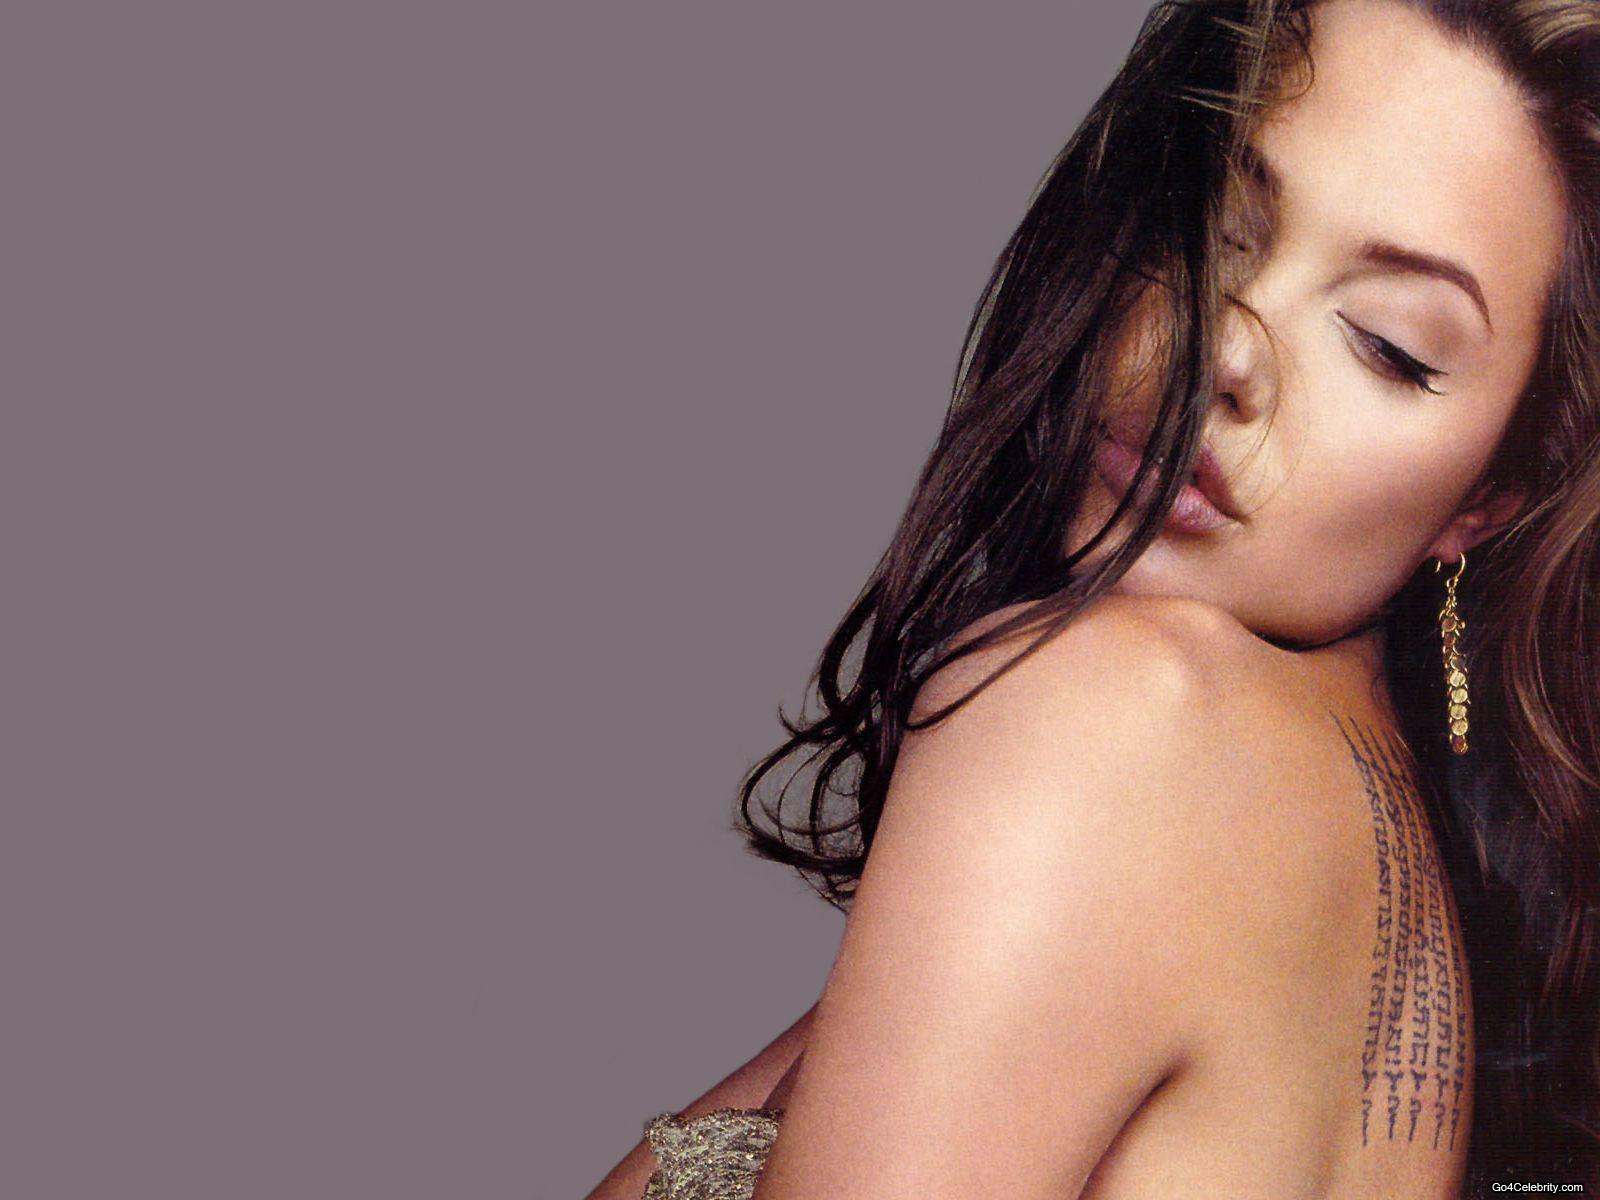 Hot And Sey Angelina Jolie